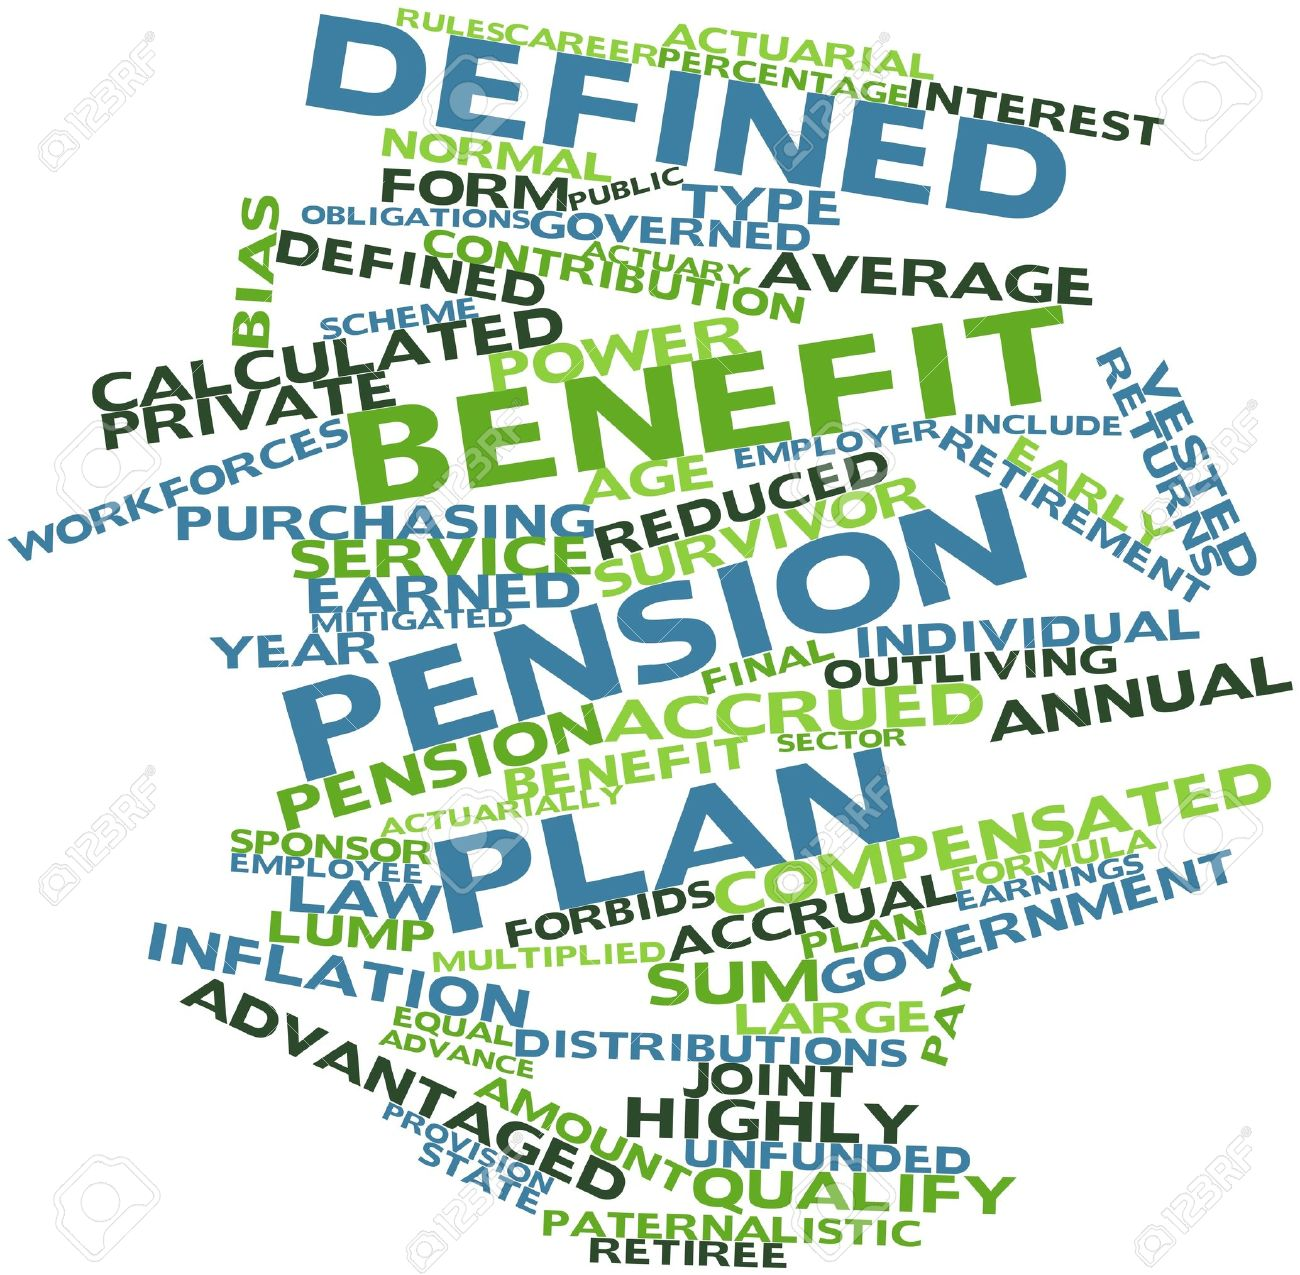 Defined Benefits Plan